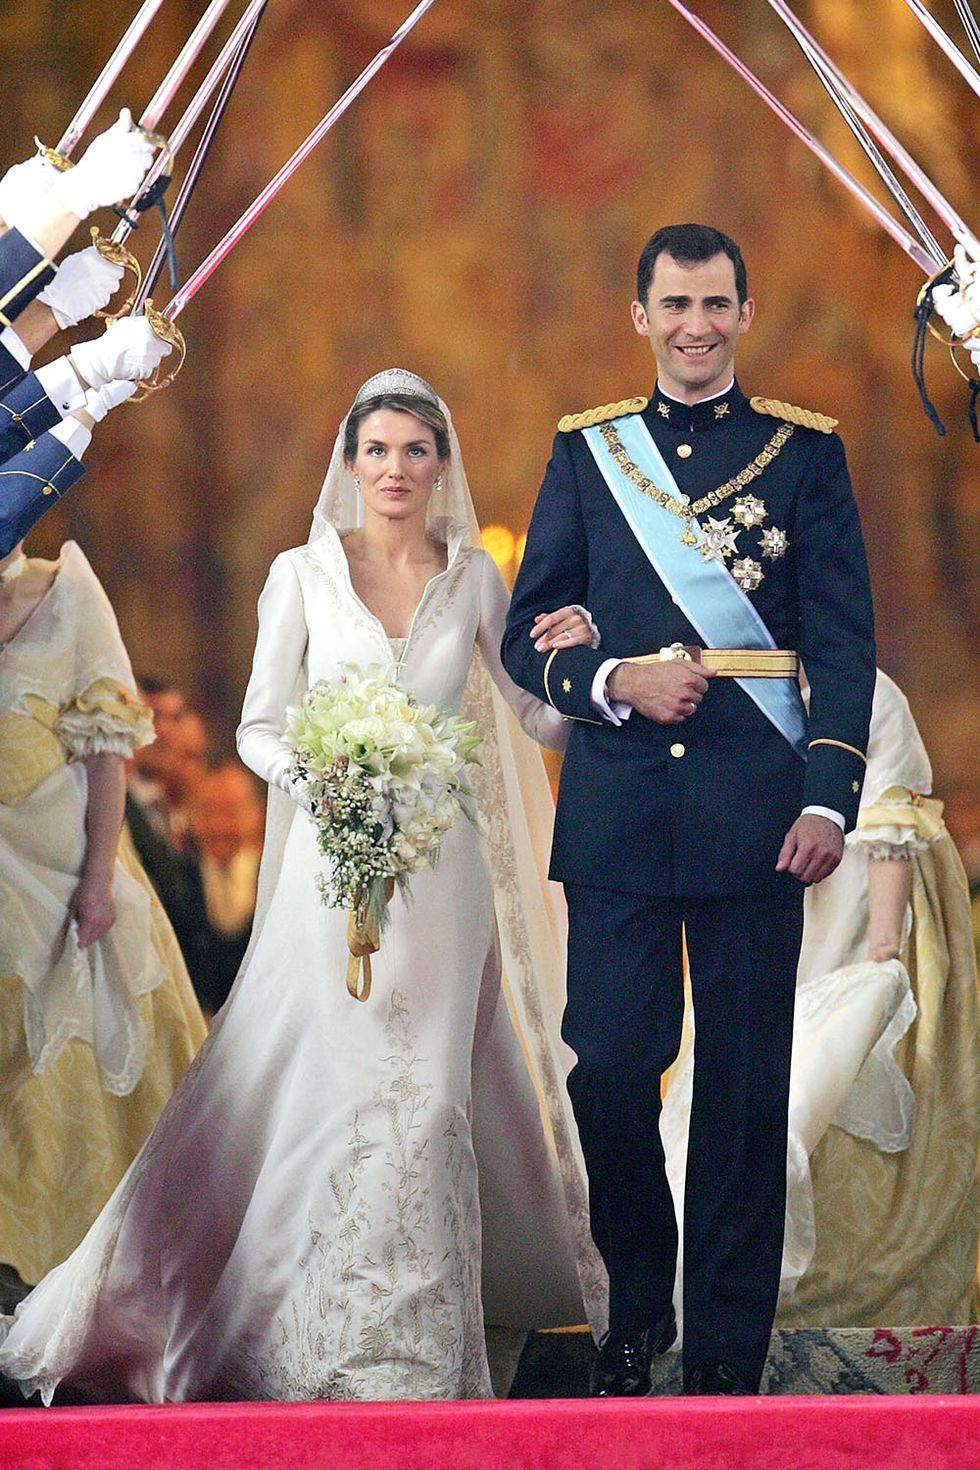 33 Best Royal Weddings Of All Time Royal Family Weddings Throughout History In 2020 Royal Family Weddings Royal Weddings Princess Marie Of Denmark